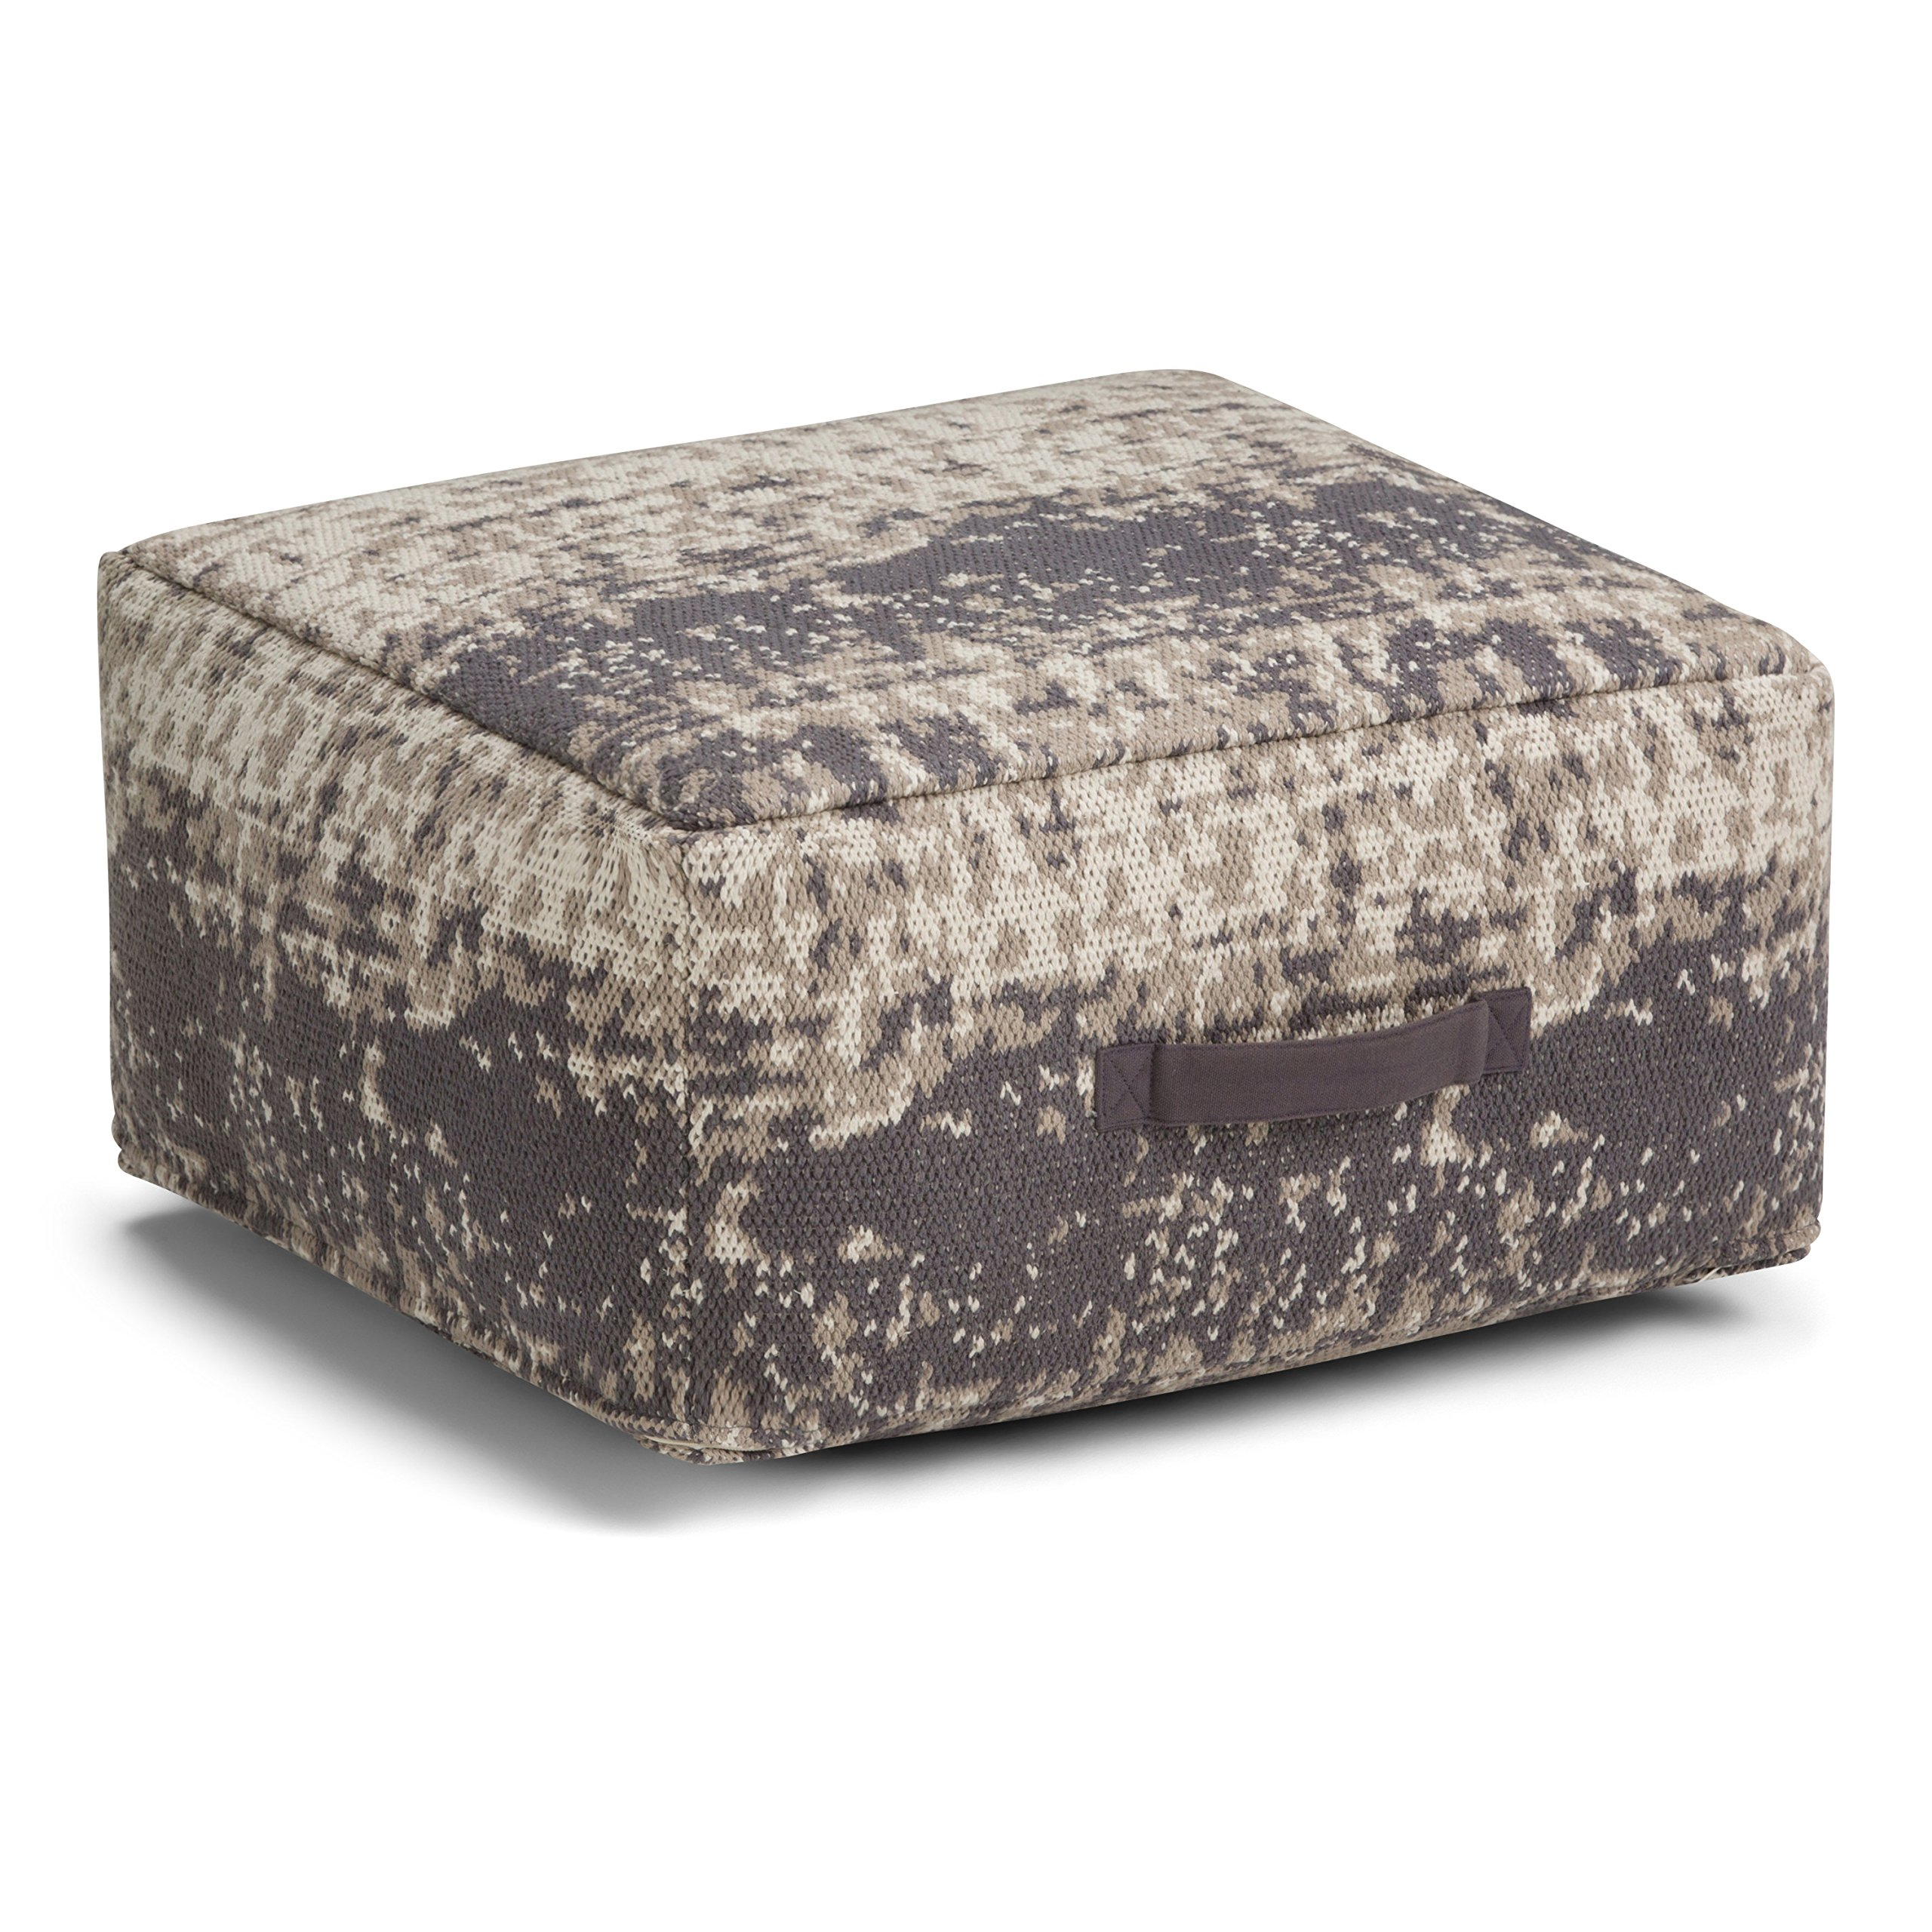 Simpli Home Tilley Square Pouf, Taupe and Grey